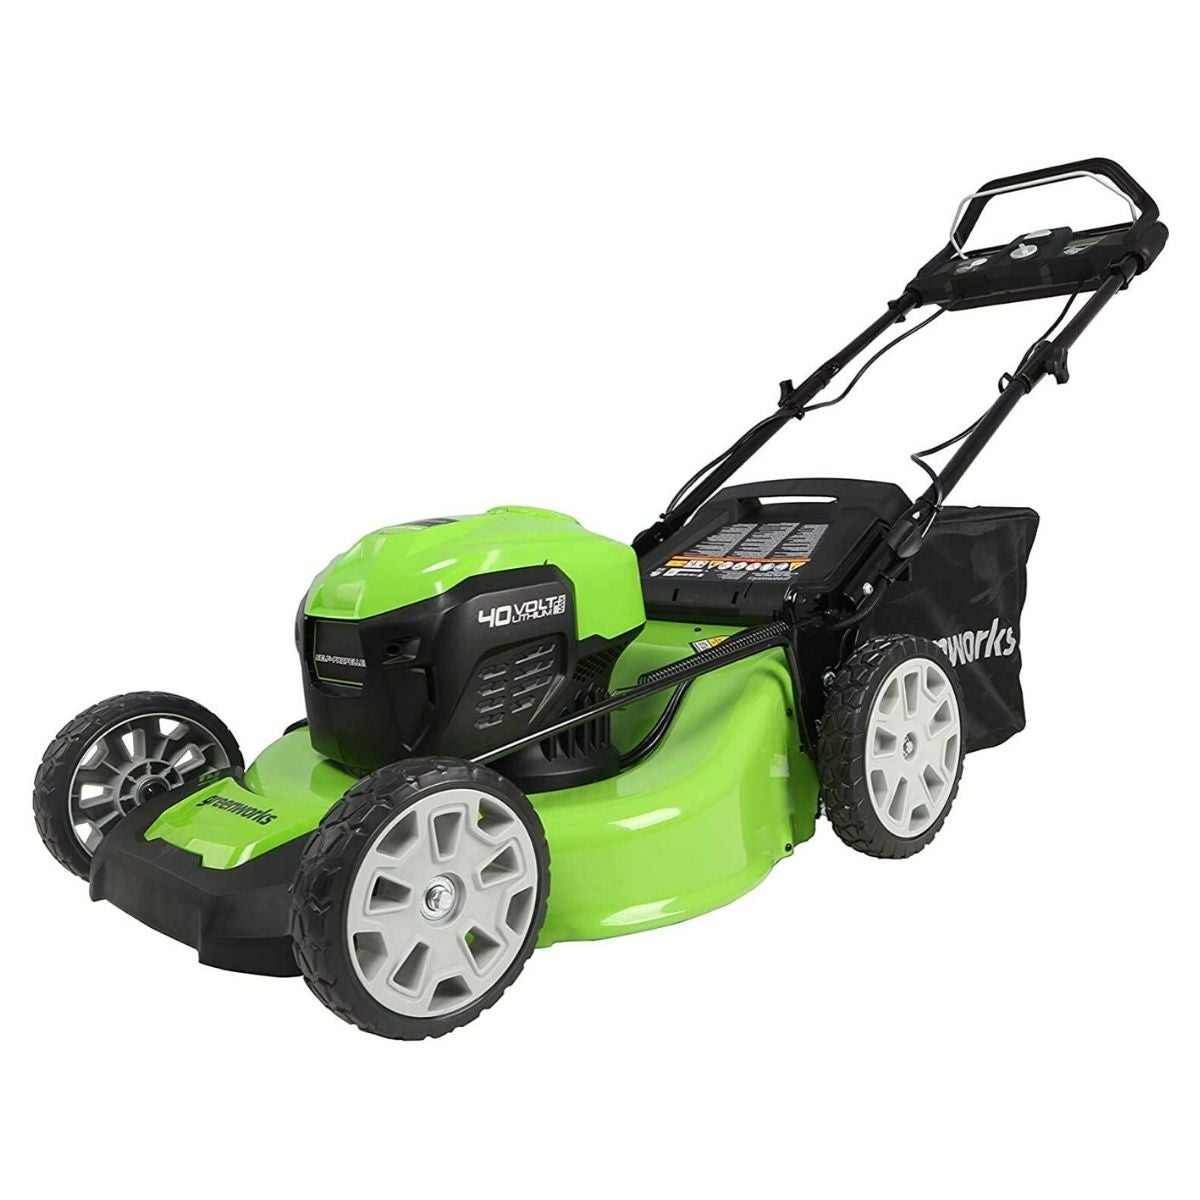 When Do Lawn Mowers Go On Clearance At Home Depot